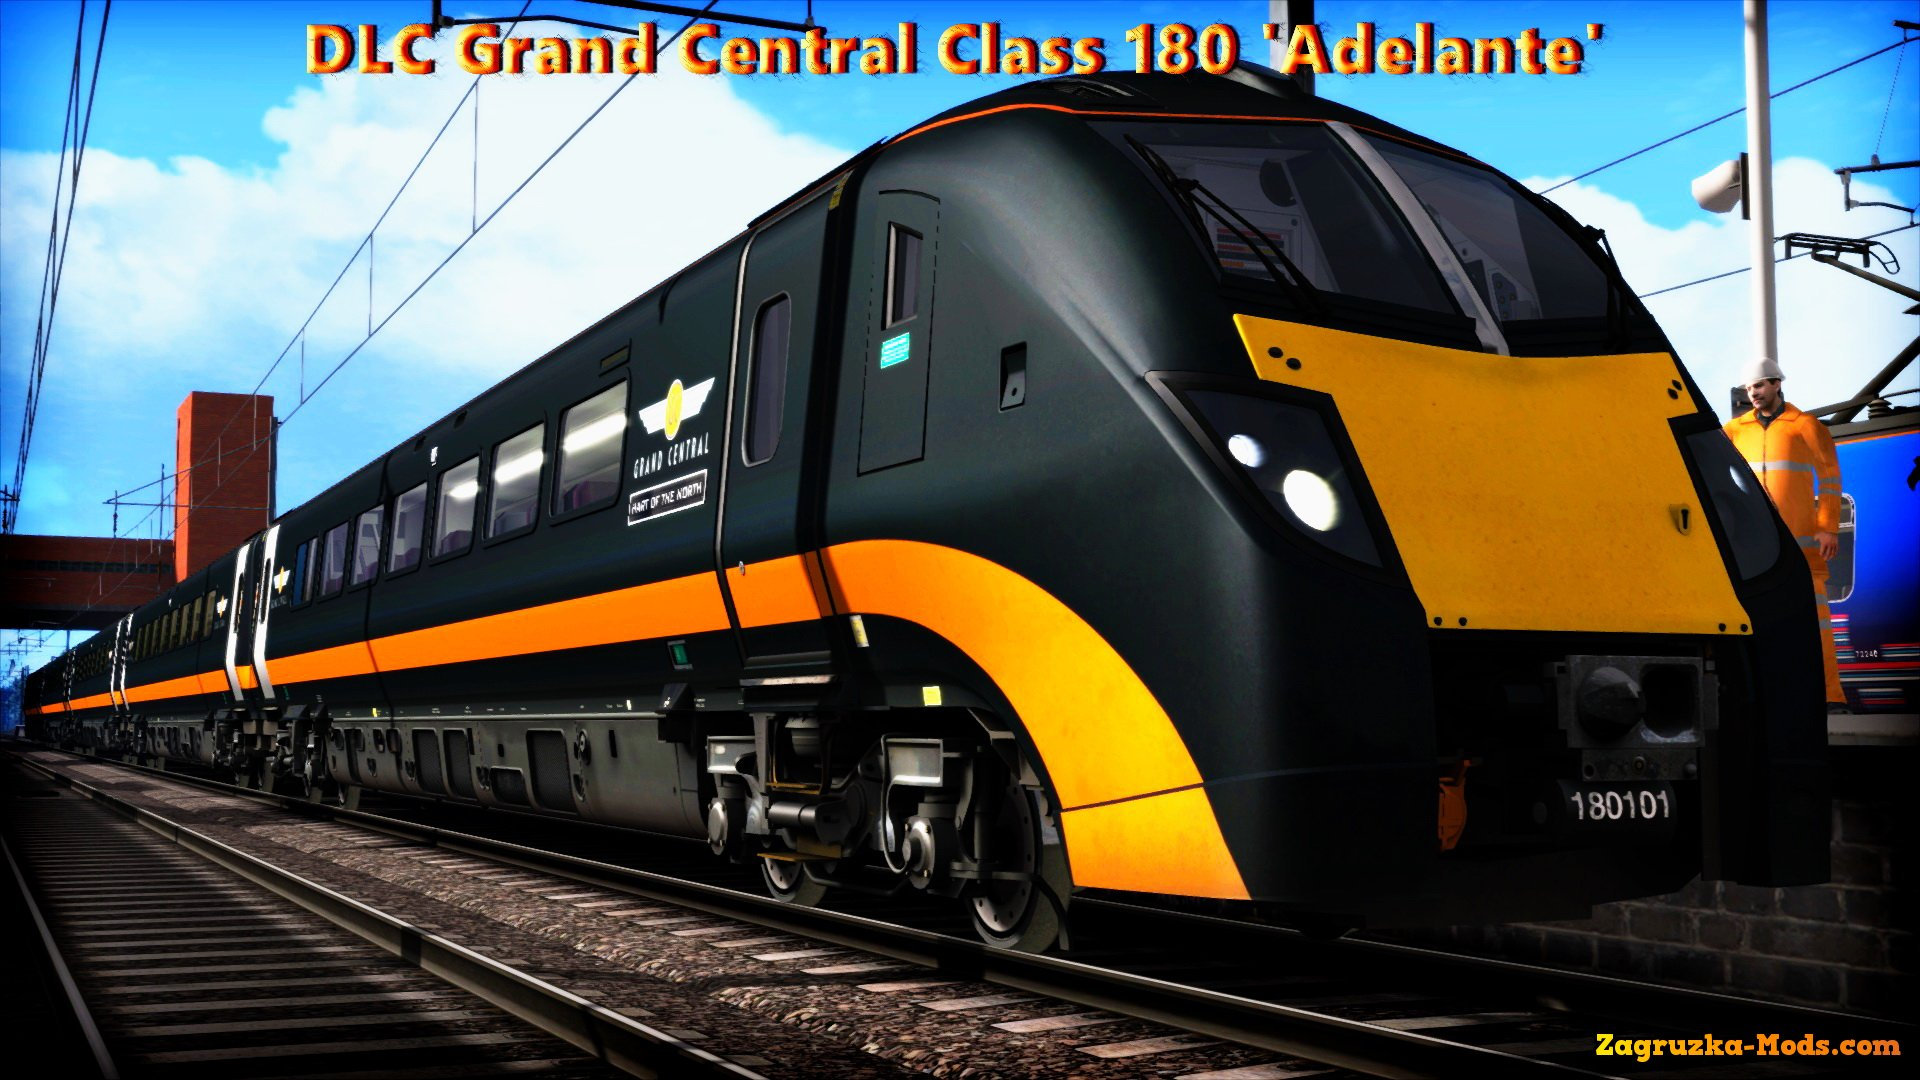 DLC Grand Central Class 180 'Adelante' for Train Simulator 2015